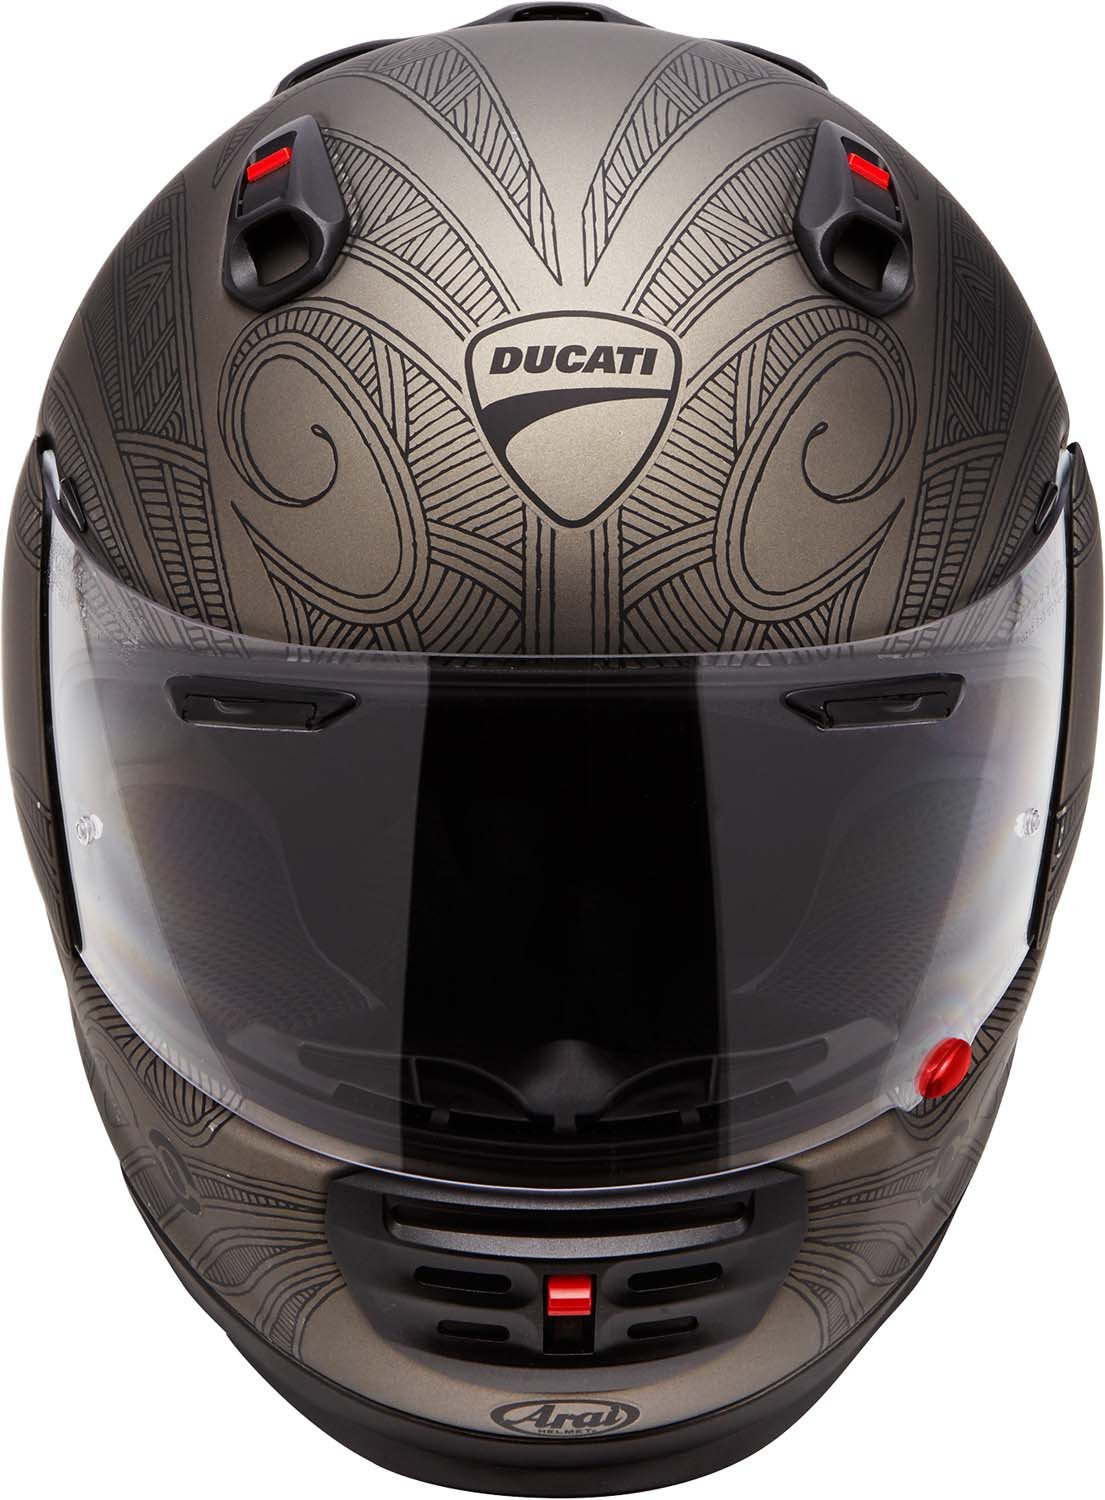 Amazon.com: Arai Defiant Ducati Full Face Soul Helmet (Medium): Automotive